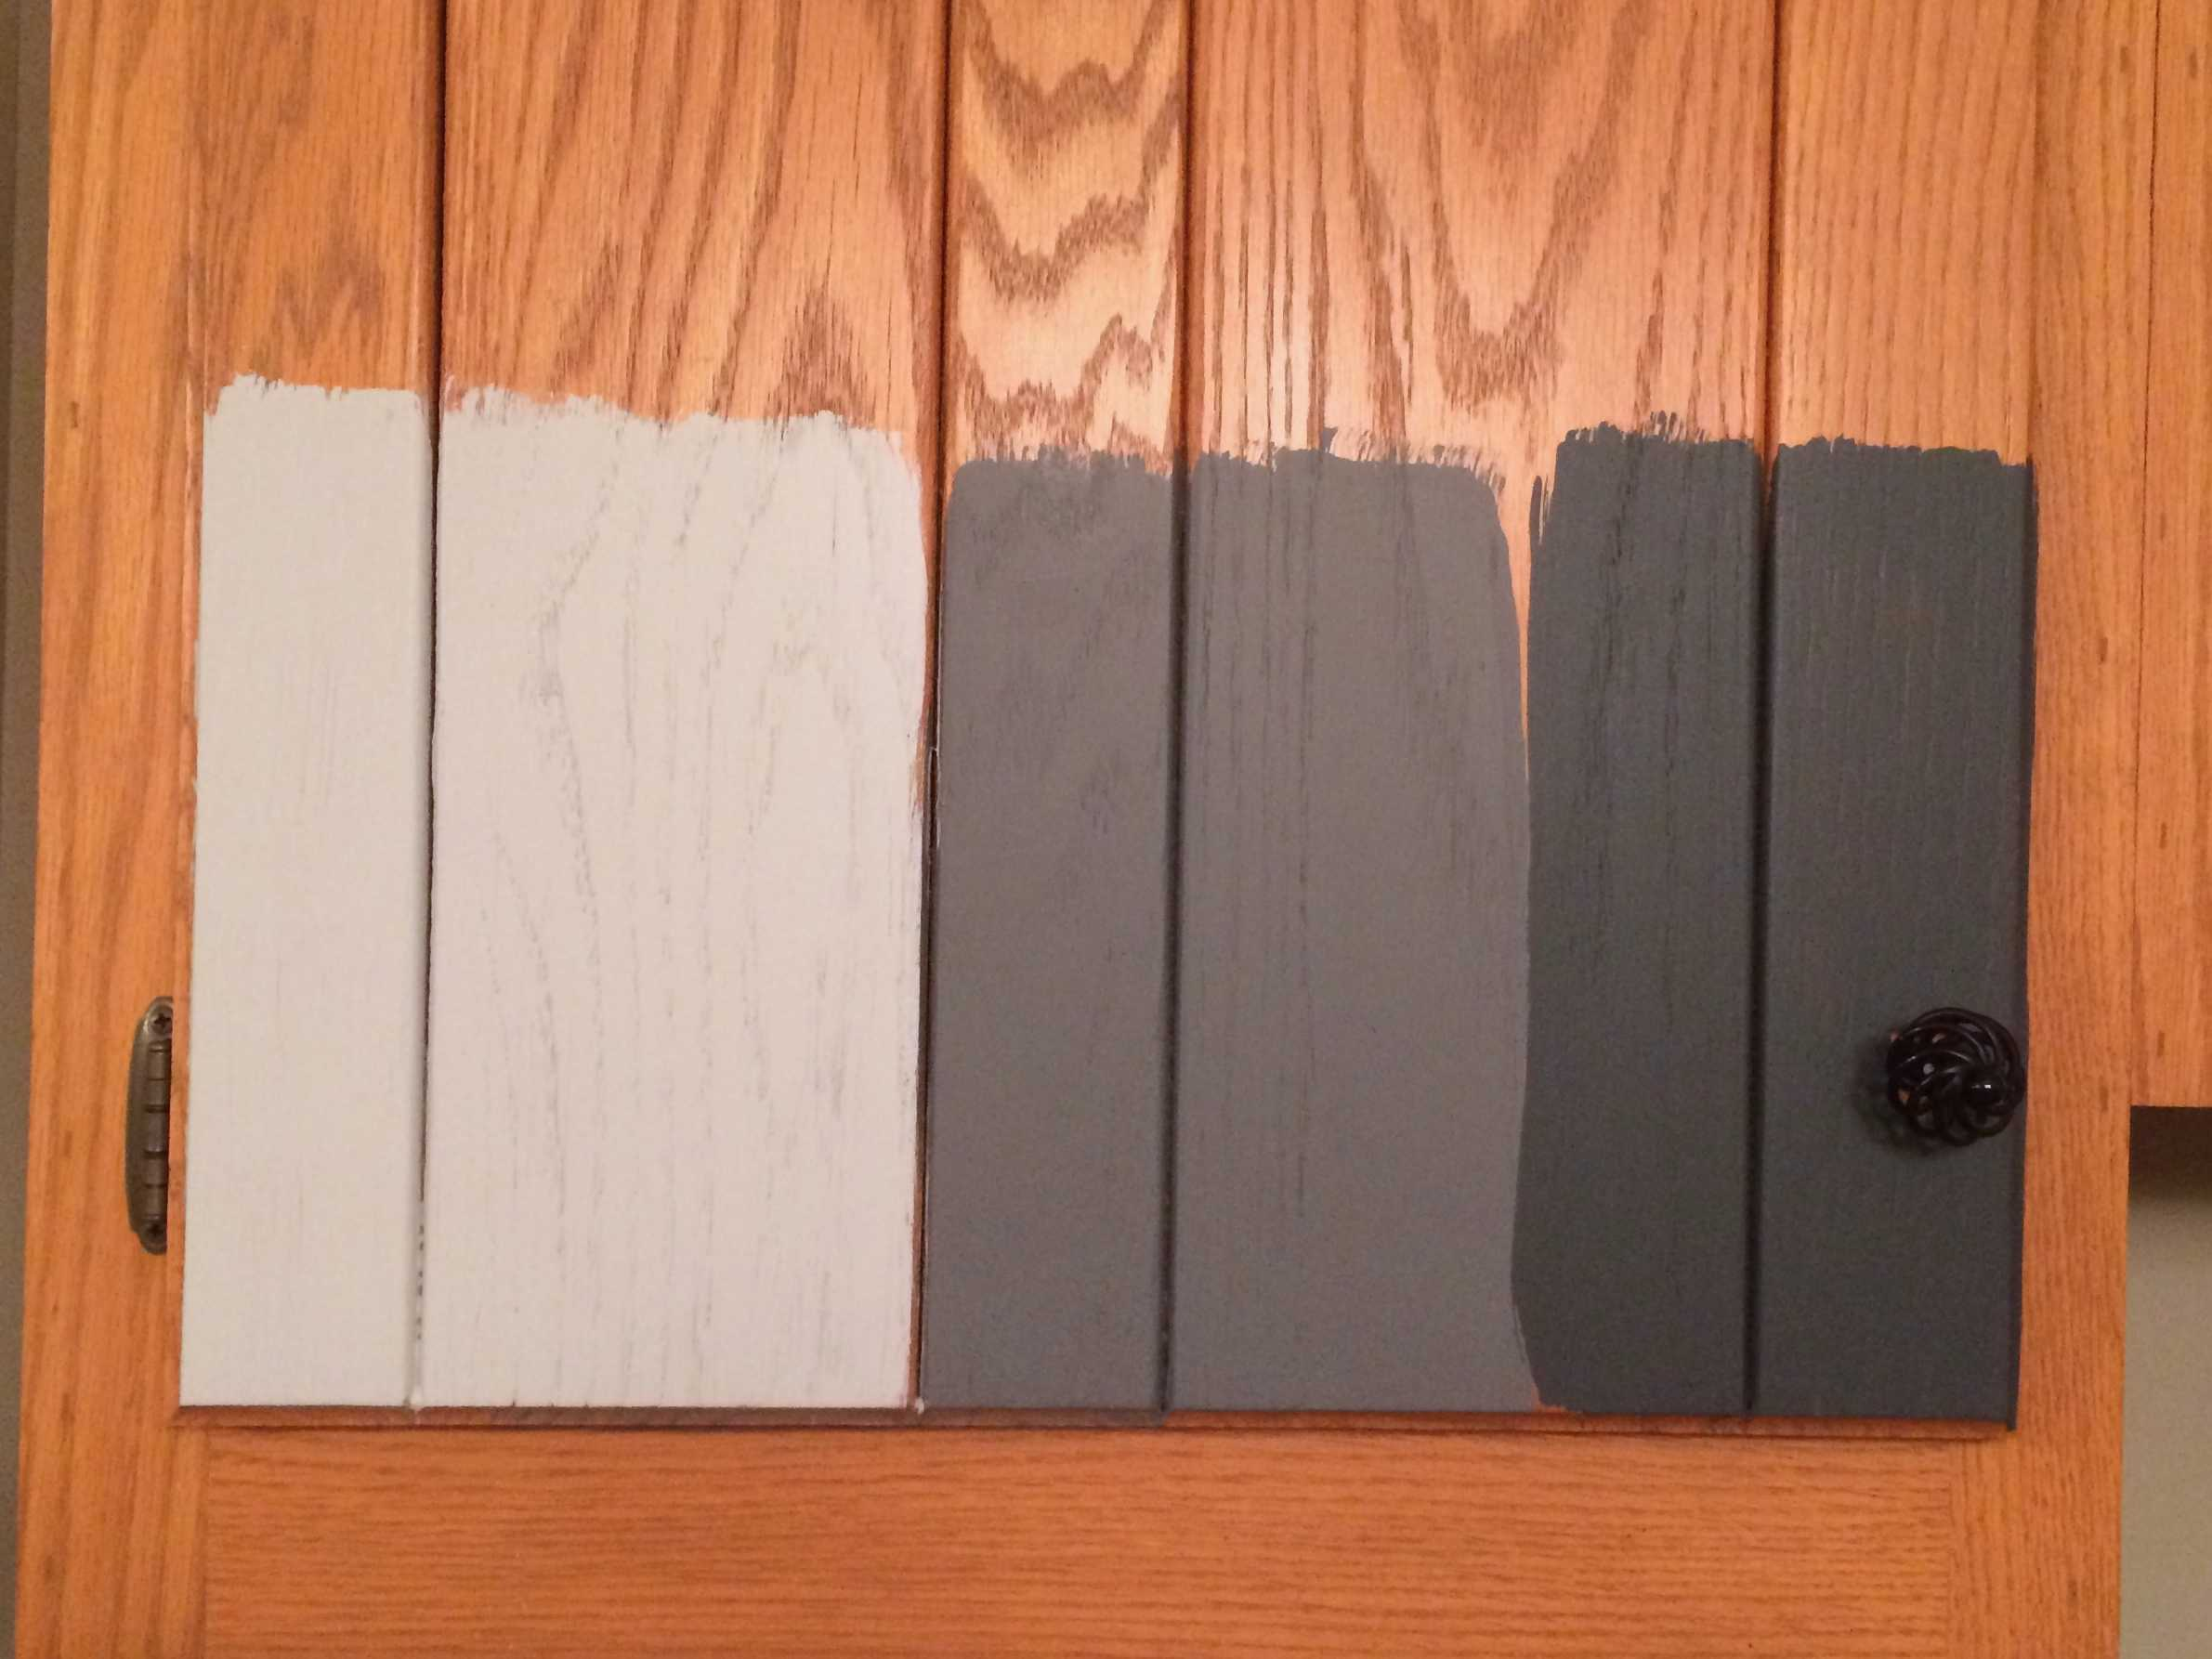 How to paint kitchen cabinets without sanding or priming Priming walls before painting